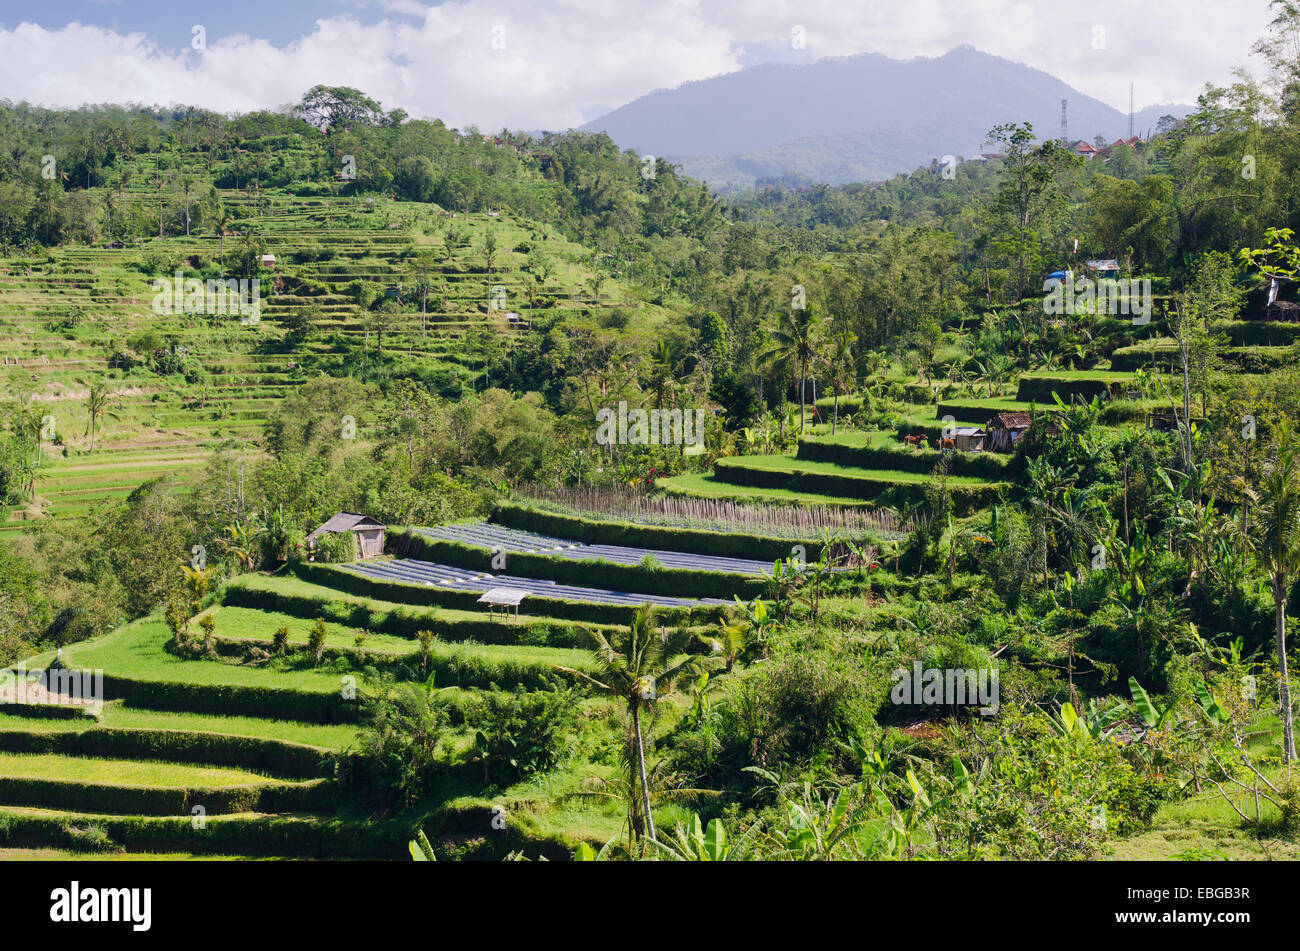 Rice terrace landscape pacung bali indonesia stock for Terrace landscape